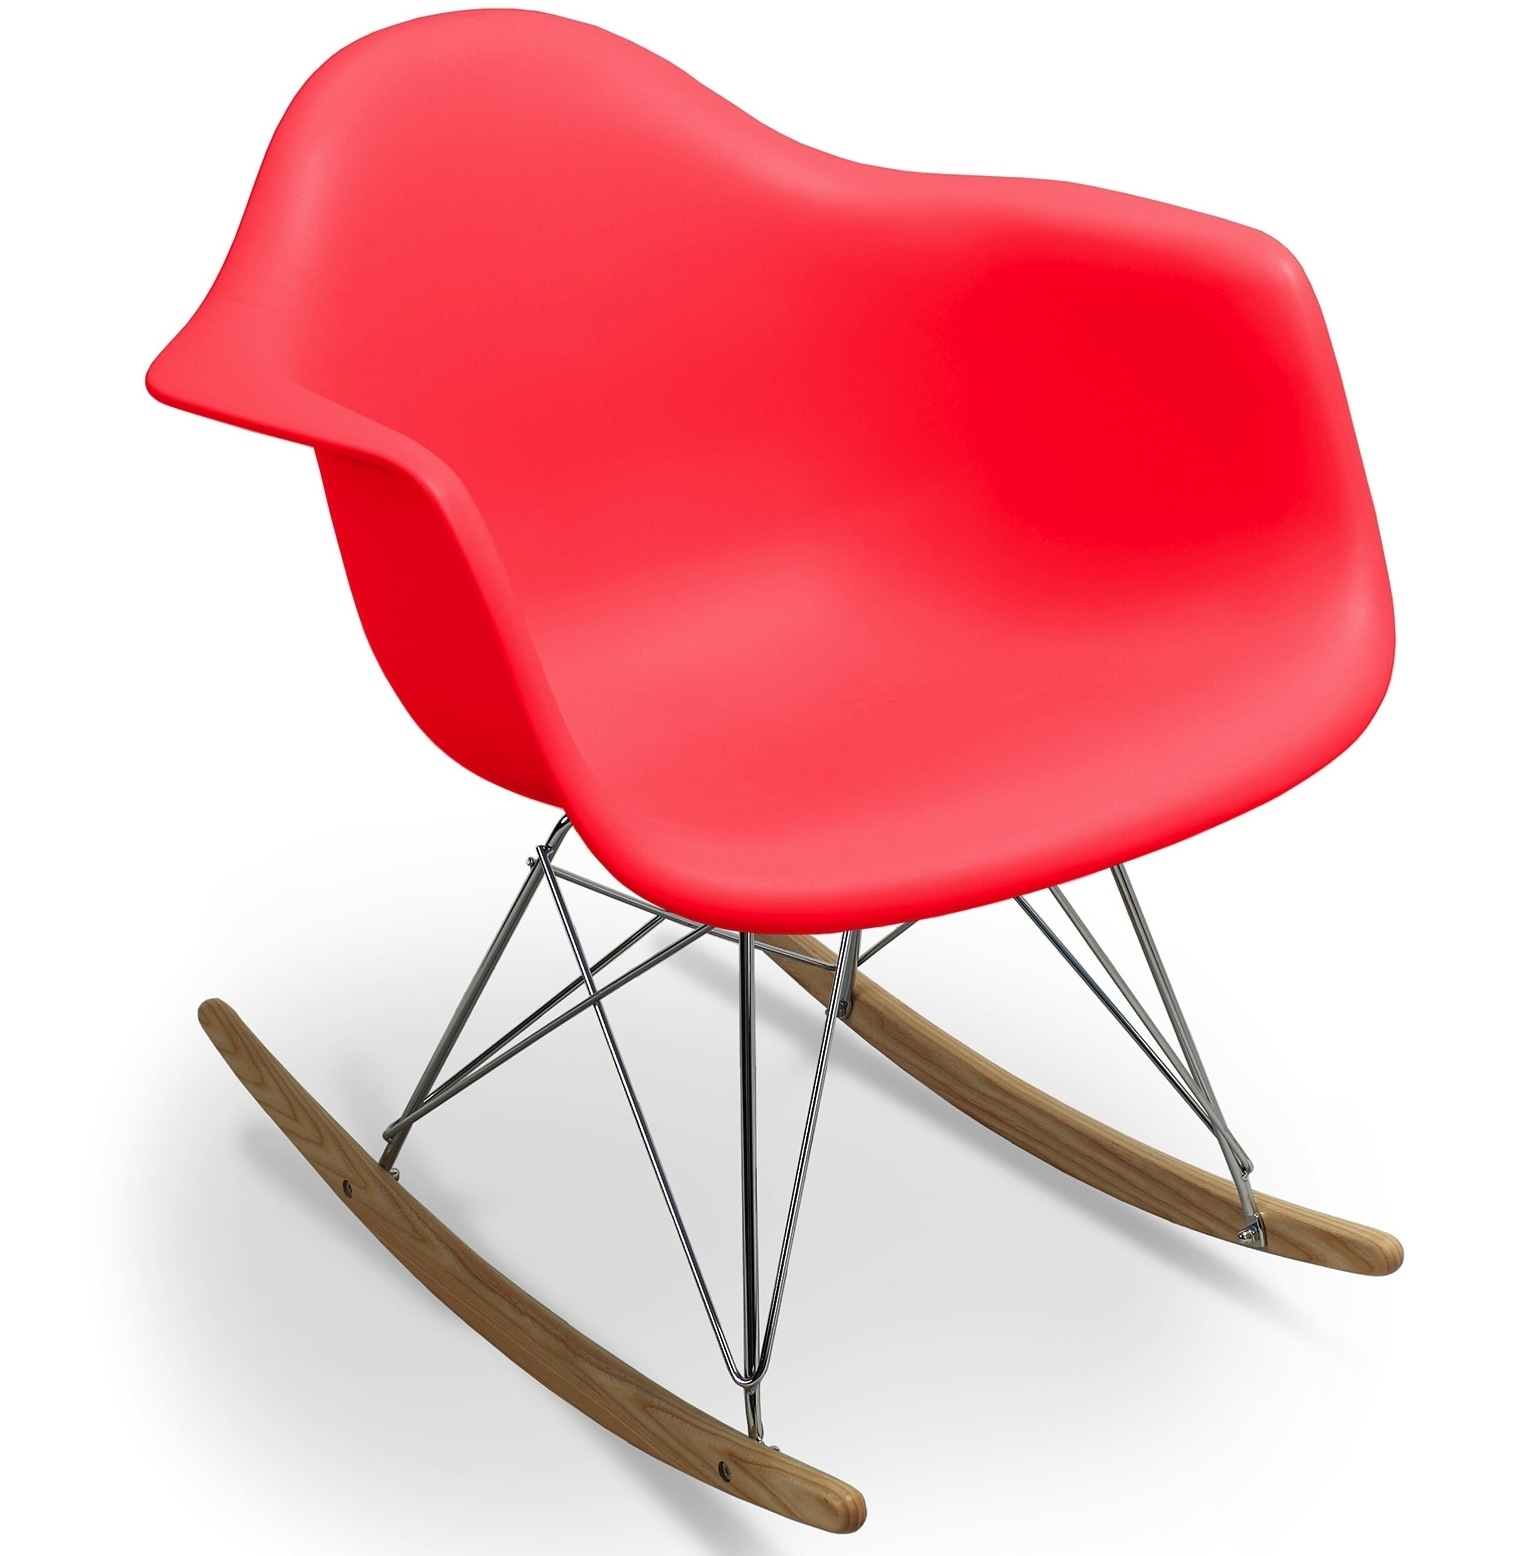 Fauteuil bascule rouge mat inspir charles eames for Achat fauteuil charles eames